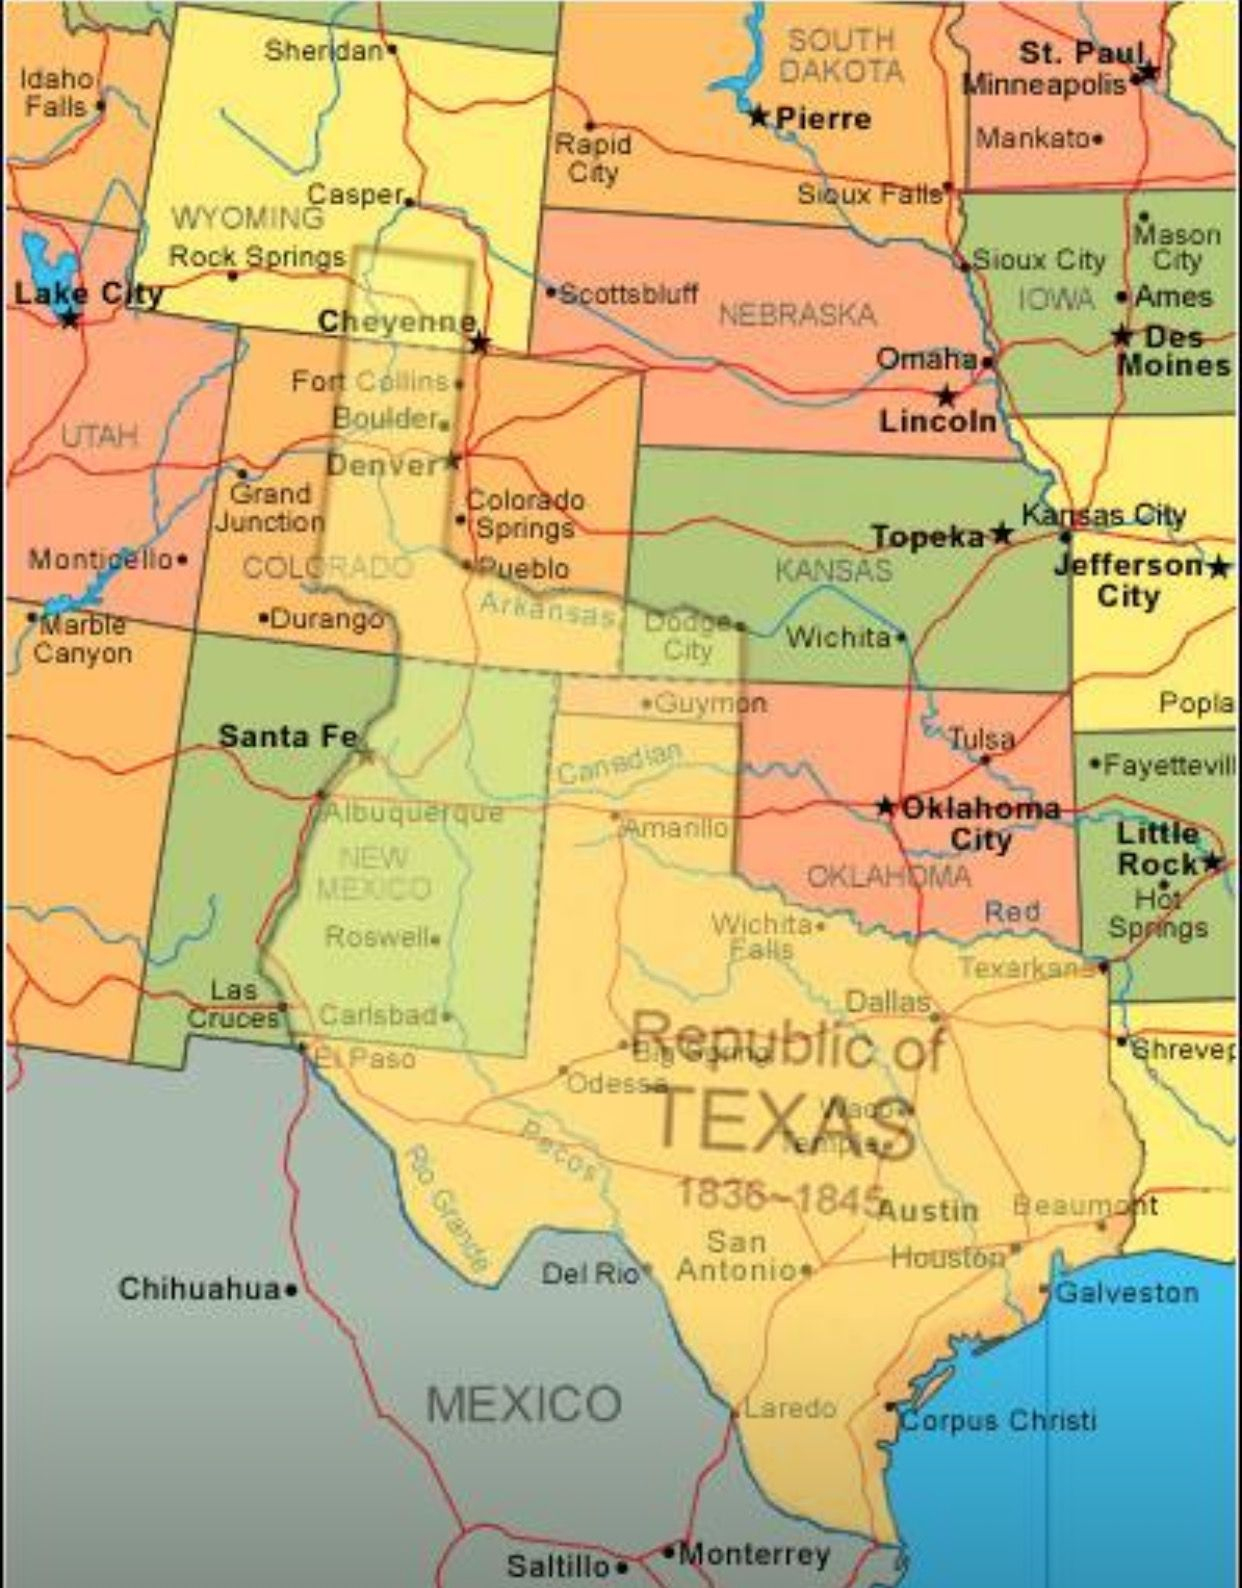 Map Showing Current Usa With The Republic Of Texas Superimposed - Johnson City Texas Map